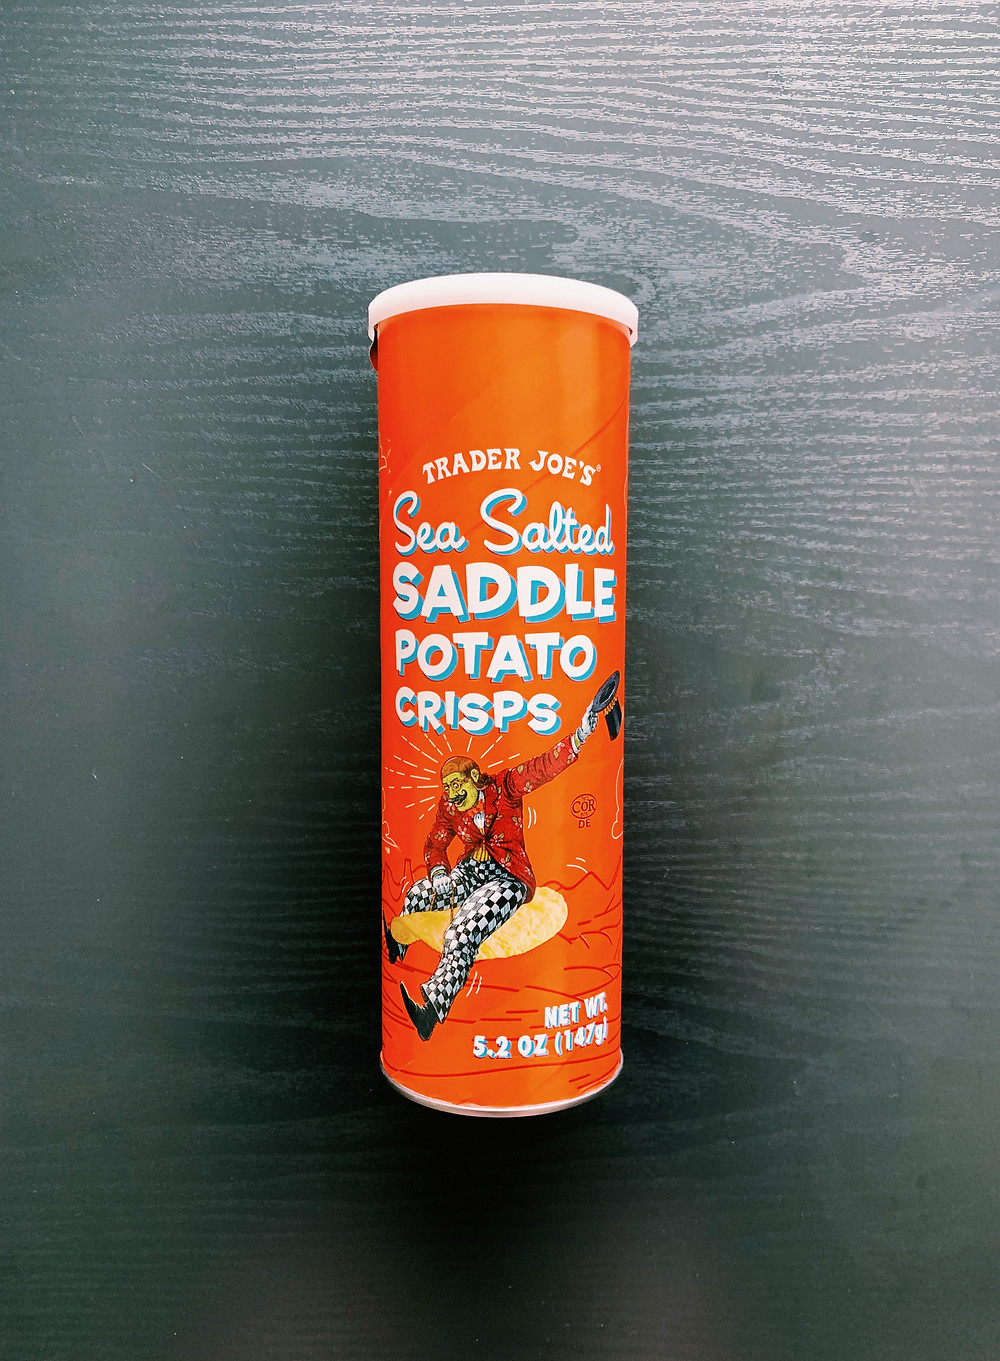 Trader Joe's Sea Salted Saddle Potato Chips